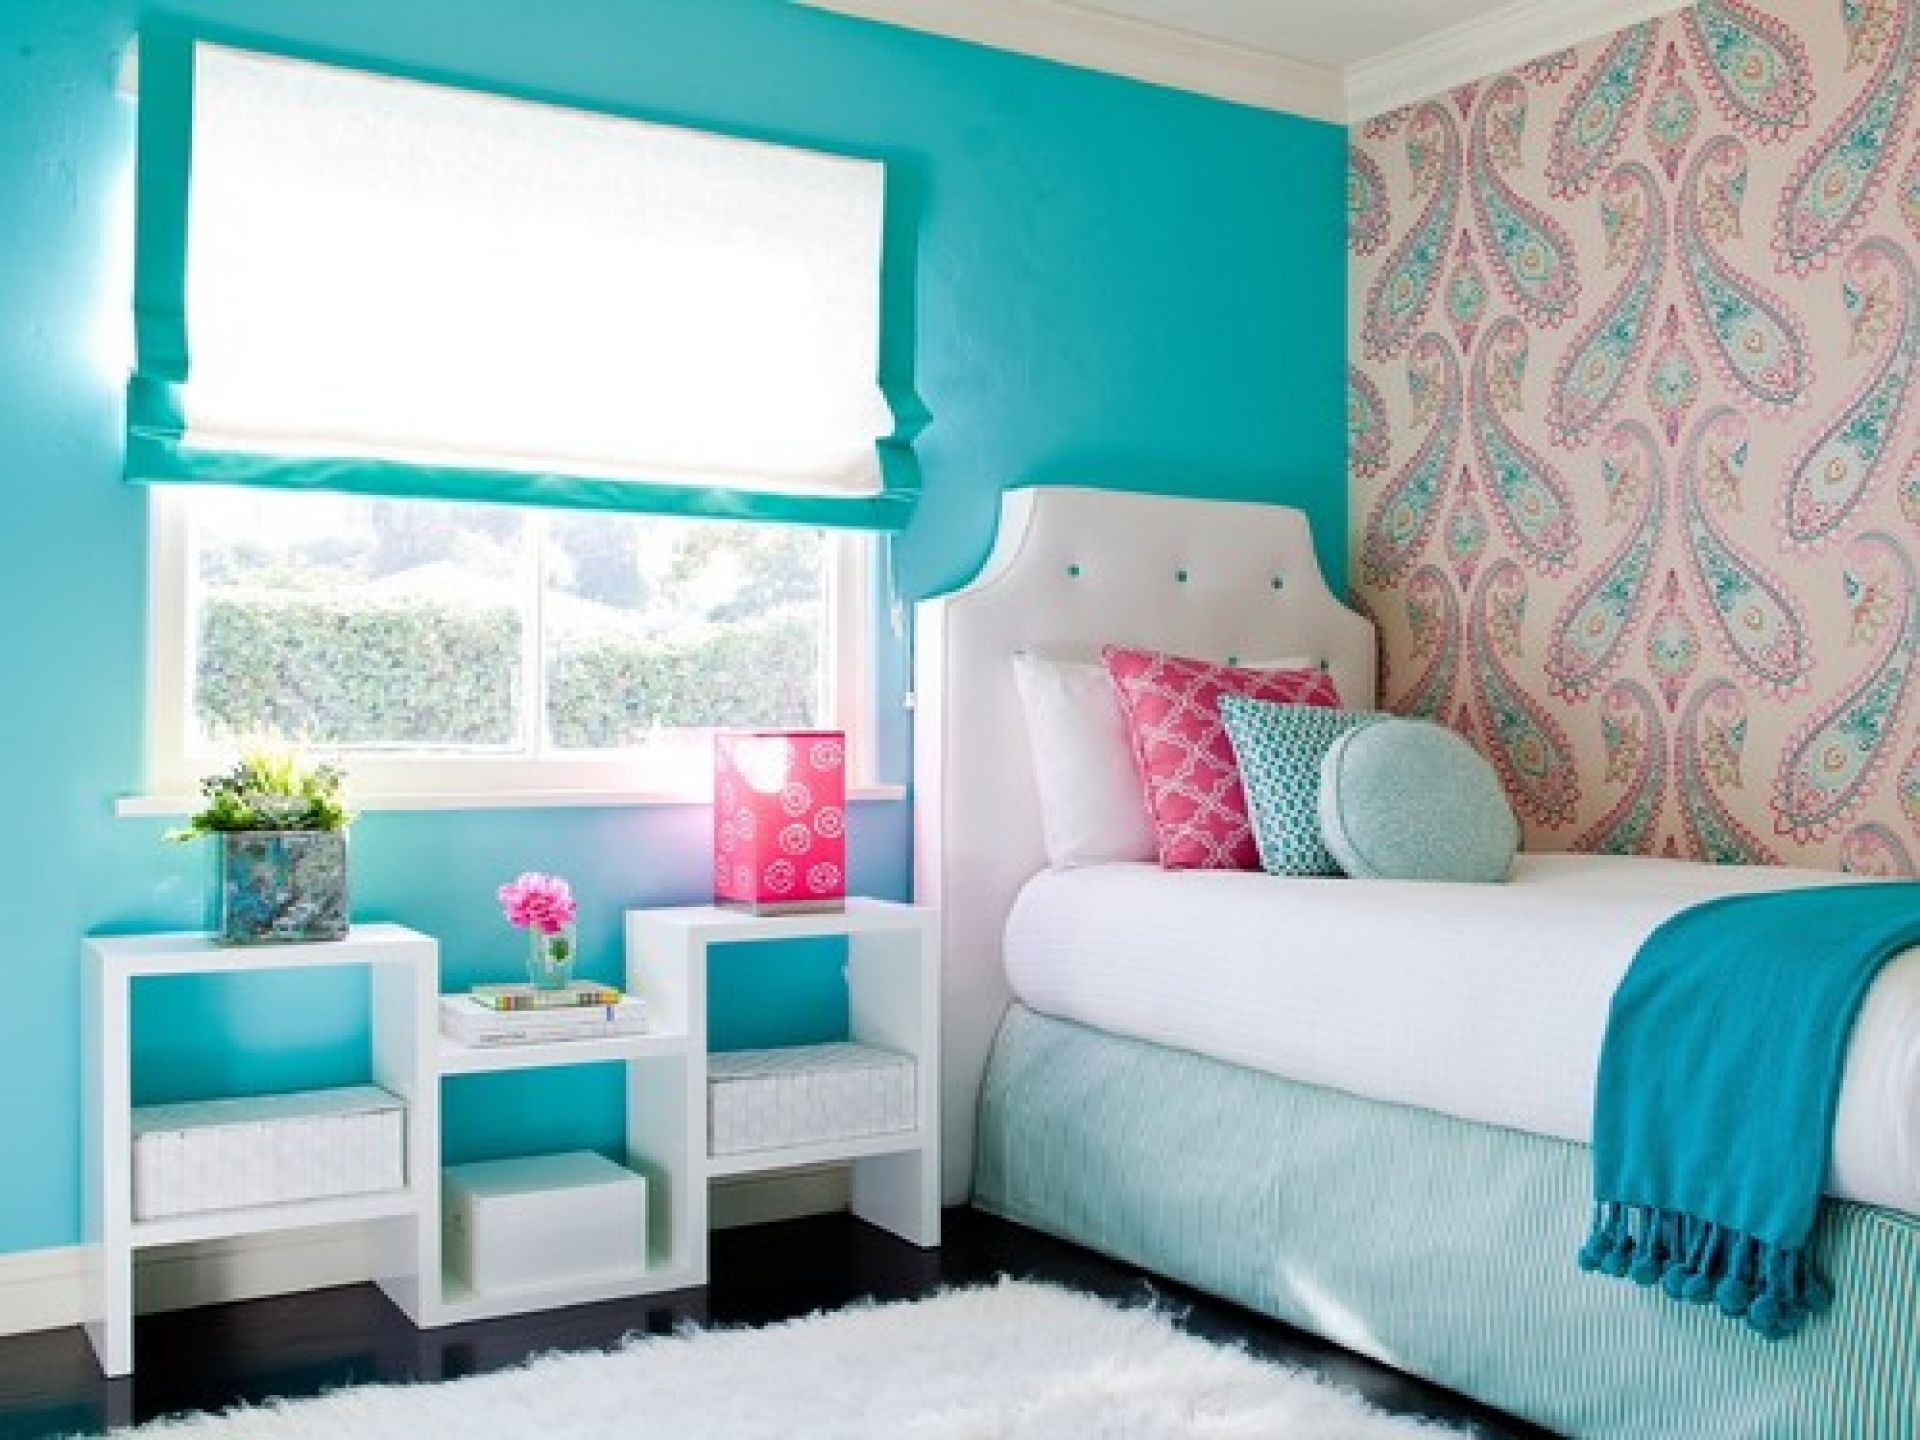 Simple design comfy room colors teenage girl bedroom wall for Designs for teenagers bedroom